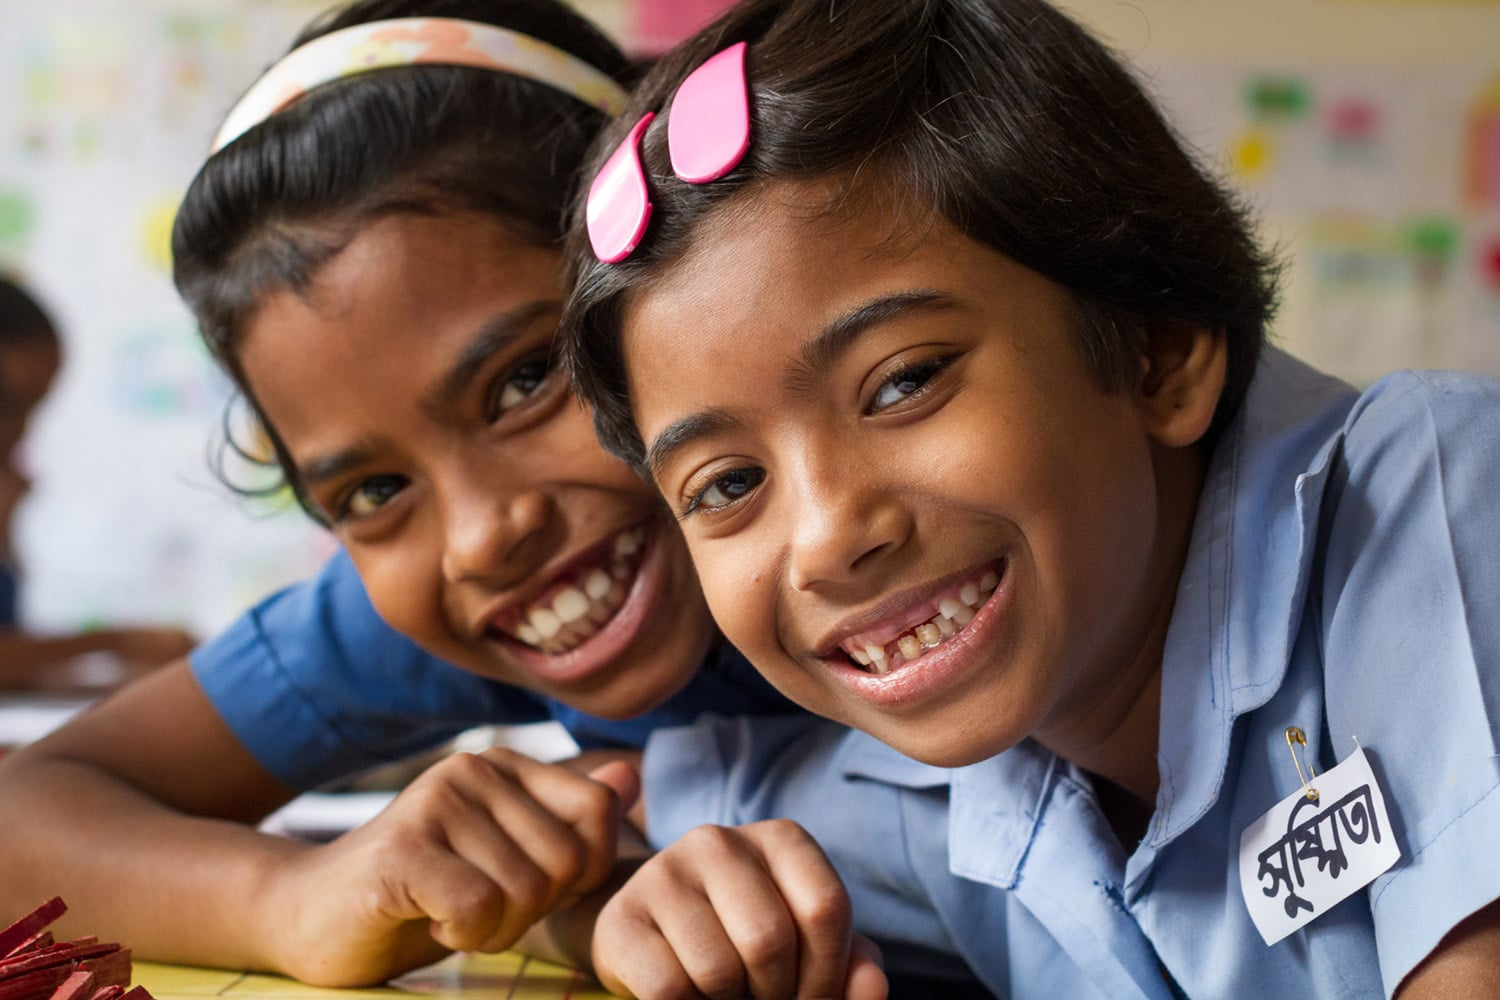 """Shushmita and her friend Binky pose for the camera. """"I love school because I get to play and I get to learn,"""" says Shushmita."""